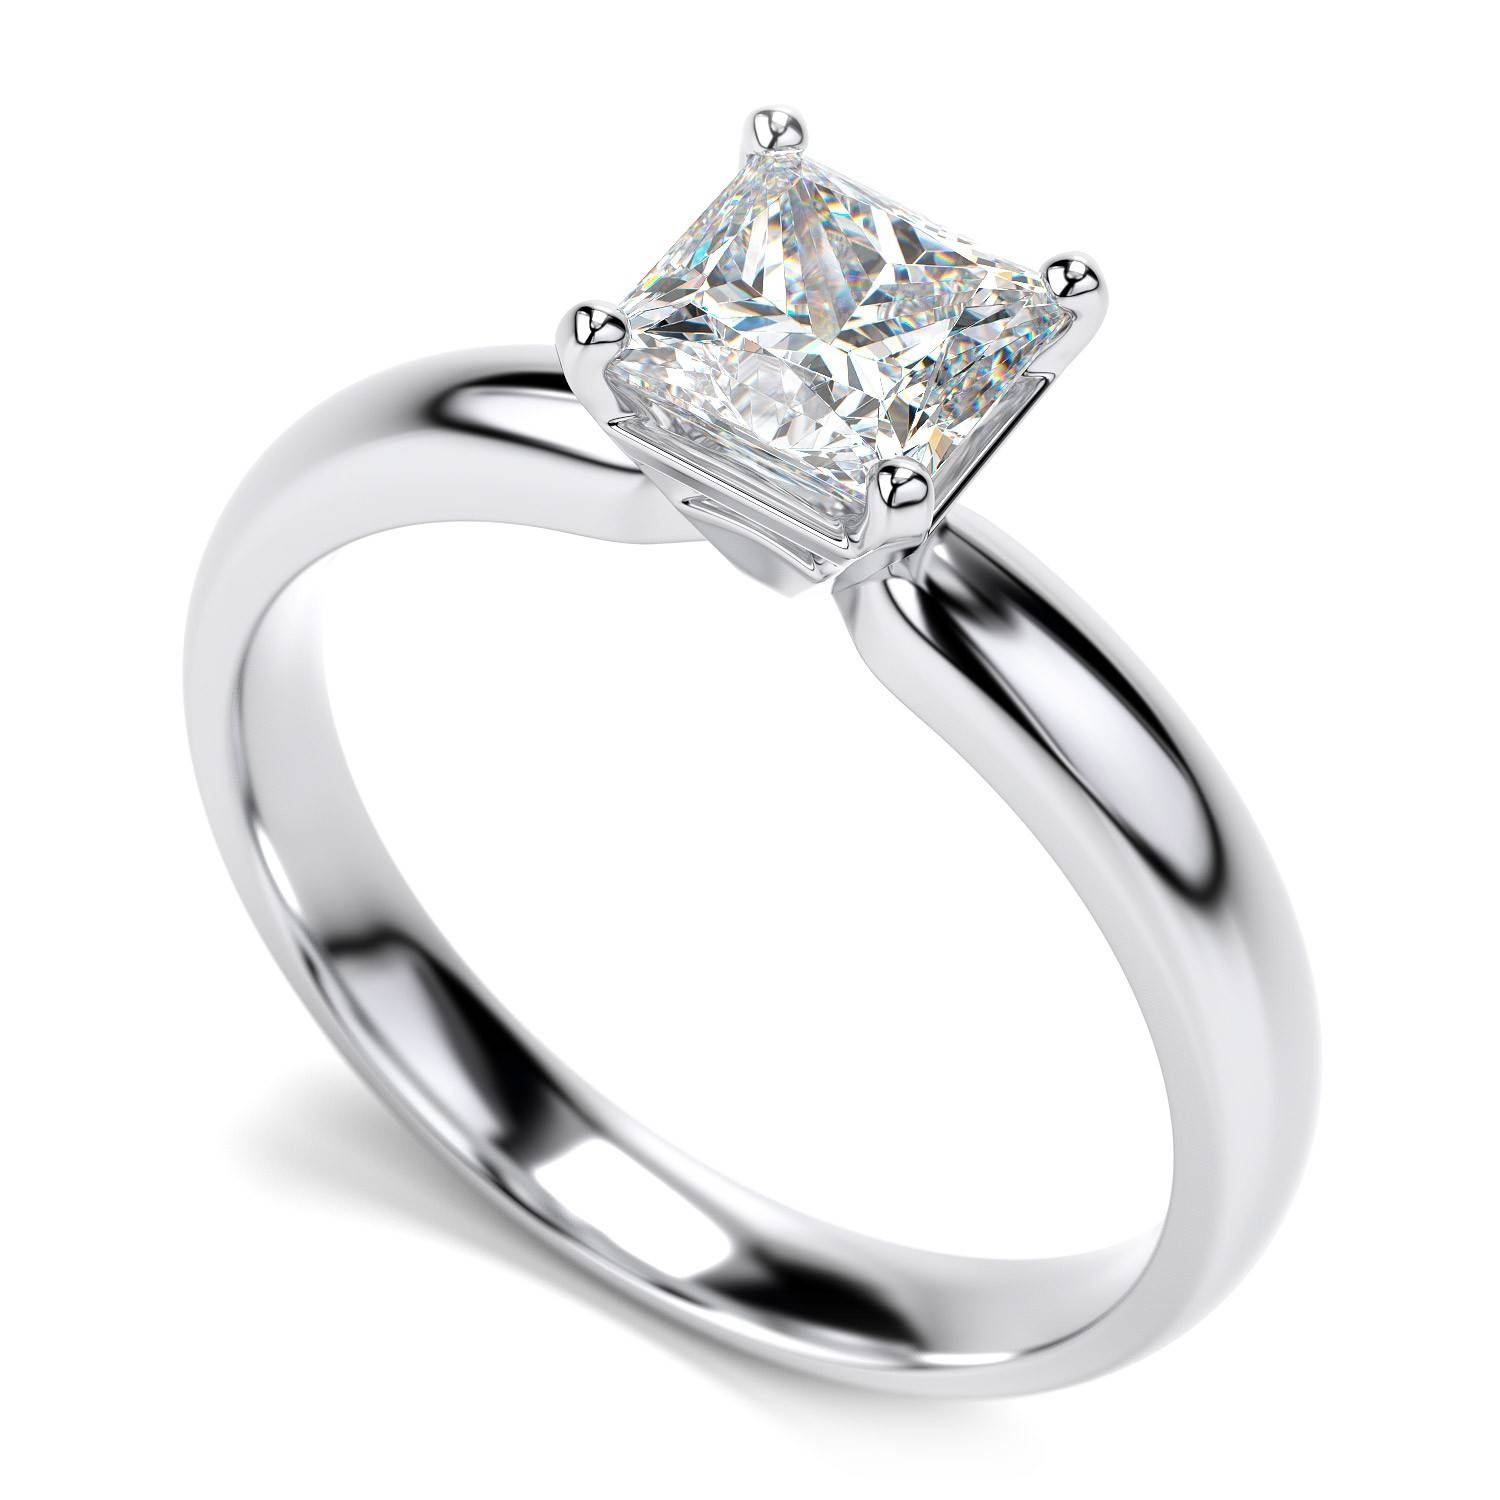 Princess Cut Engagement Rings For Princess Cut Diamond Wedding Rings (View 11 of 15)